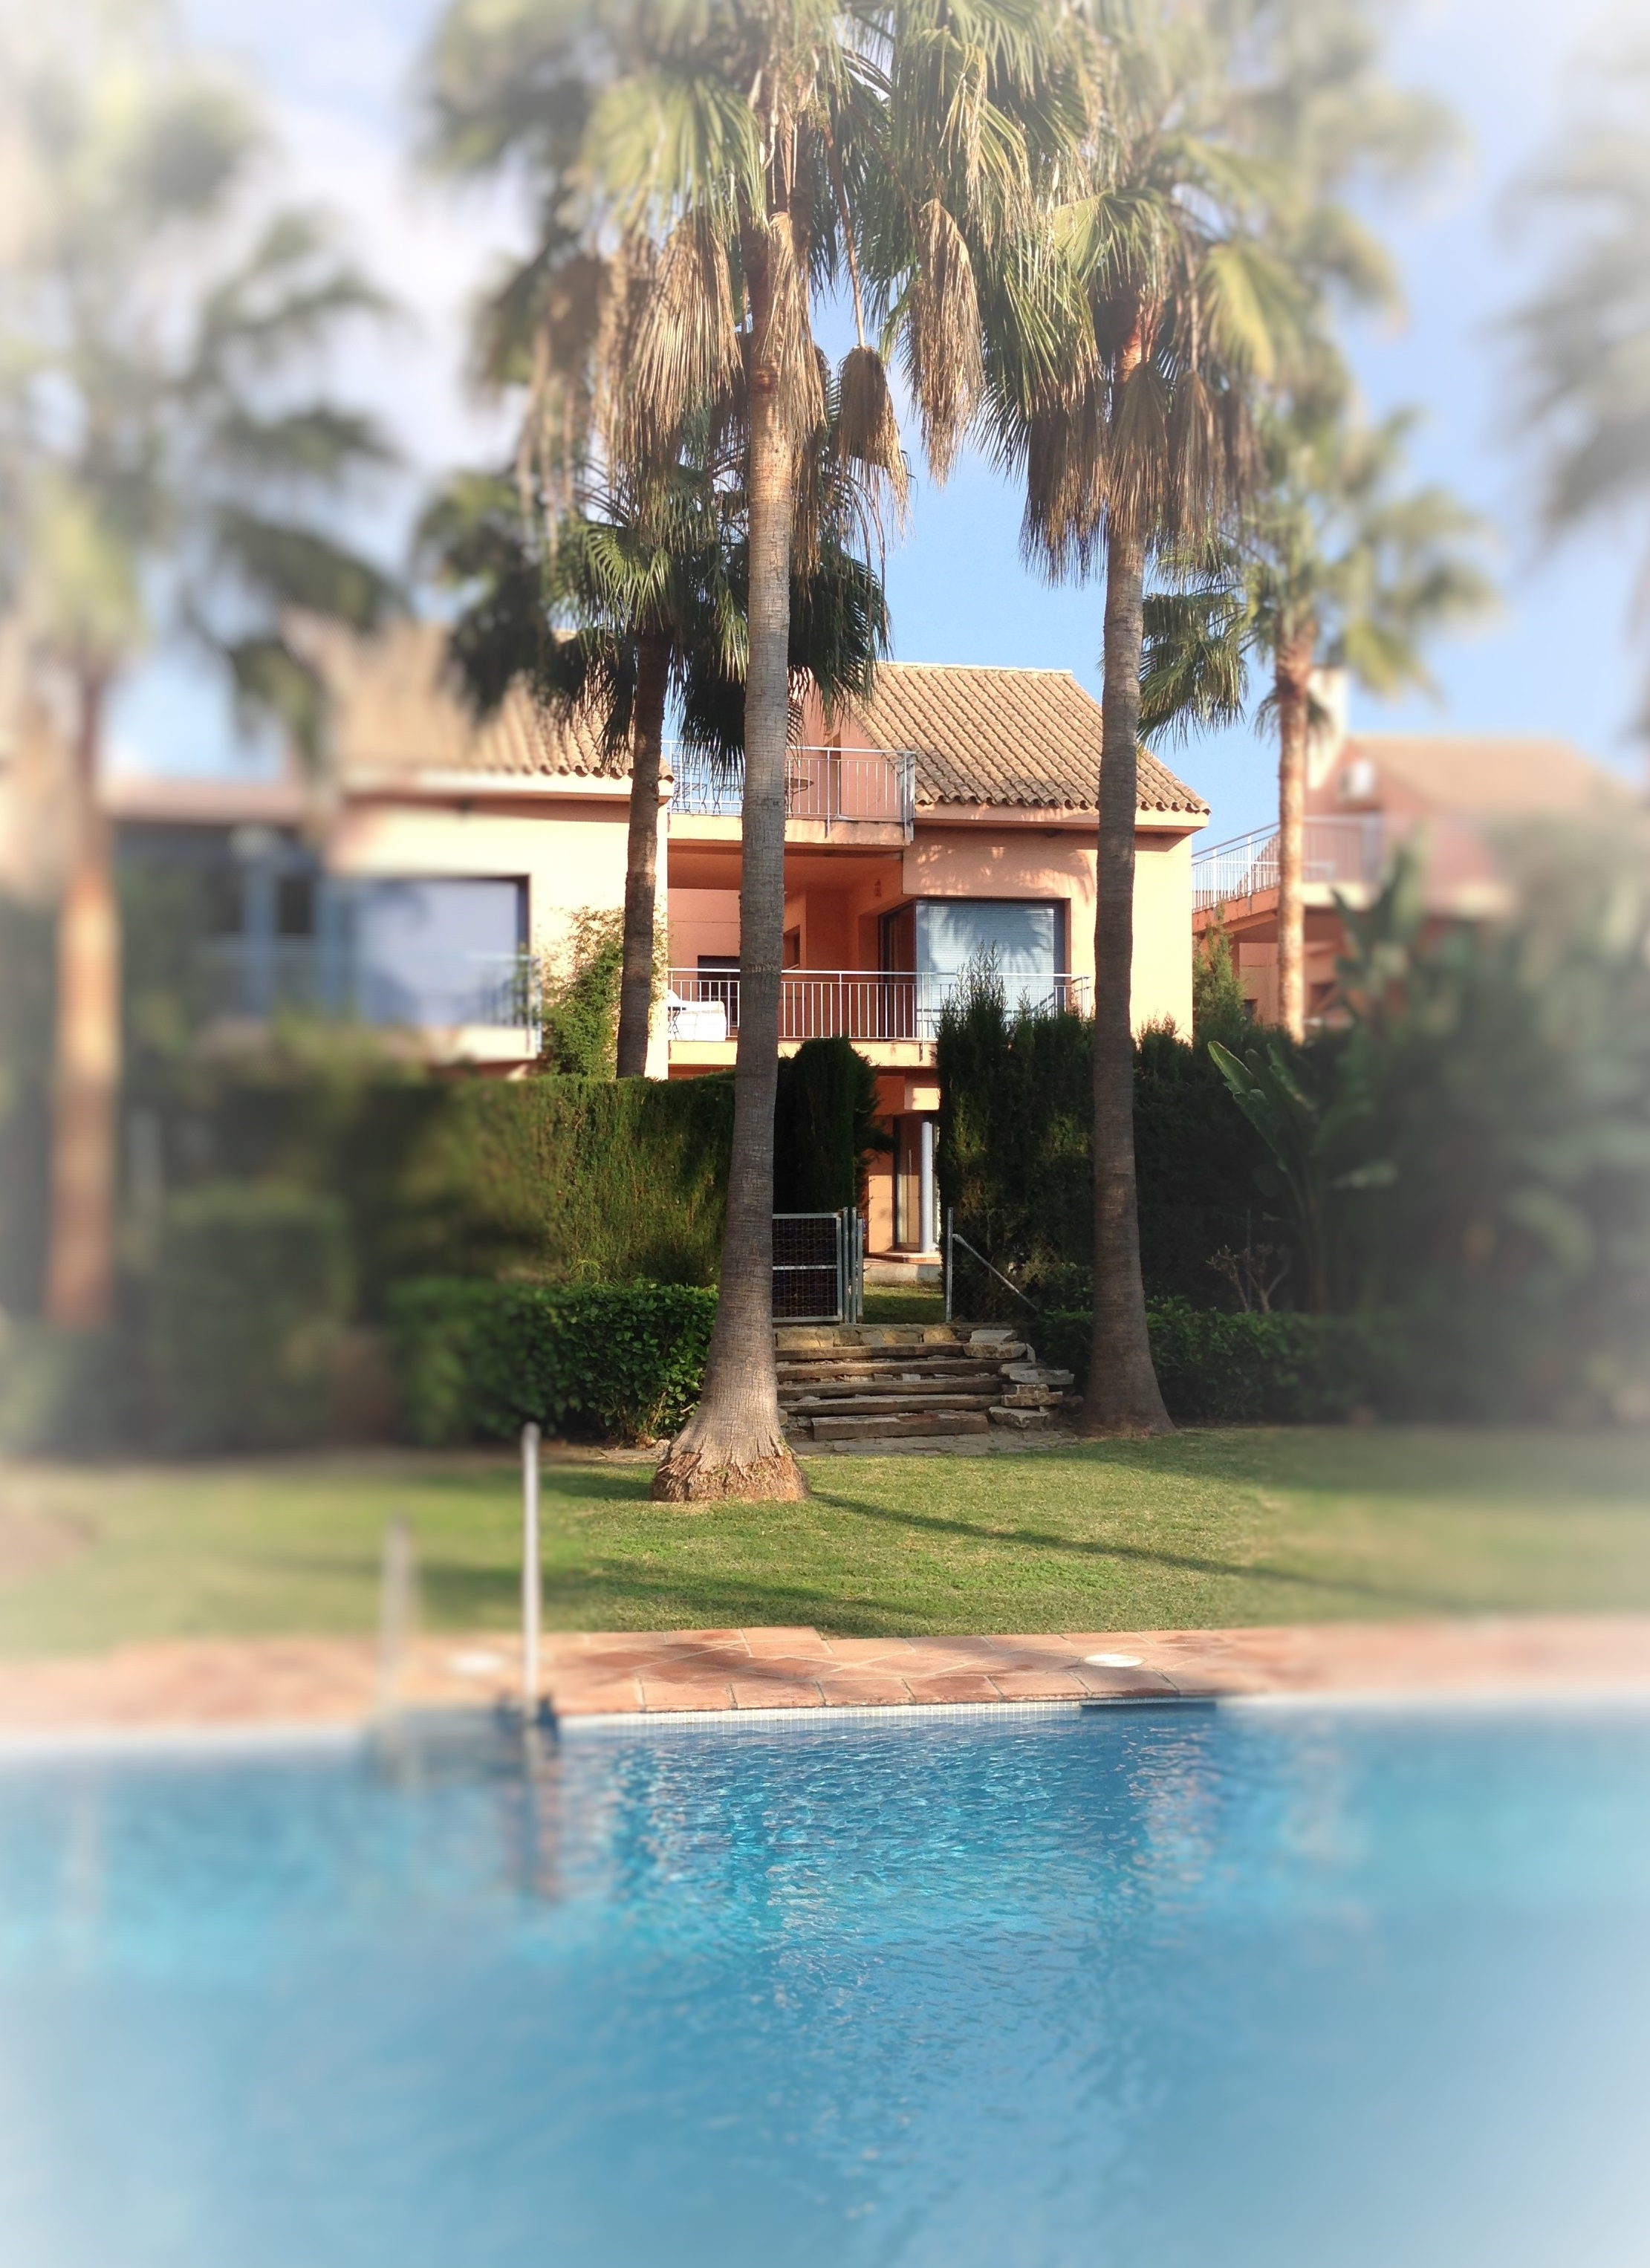 CHARMING SEMI DETACHED HOUSE FOR LONG TERM RENTAL NEAR INTERNATIONAL SCHOOLS AND GOLF COURSES.